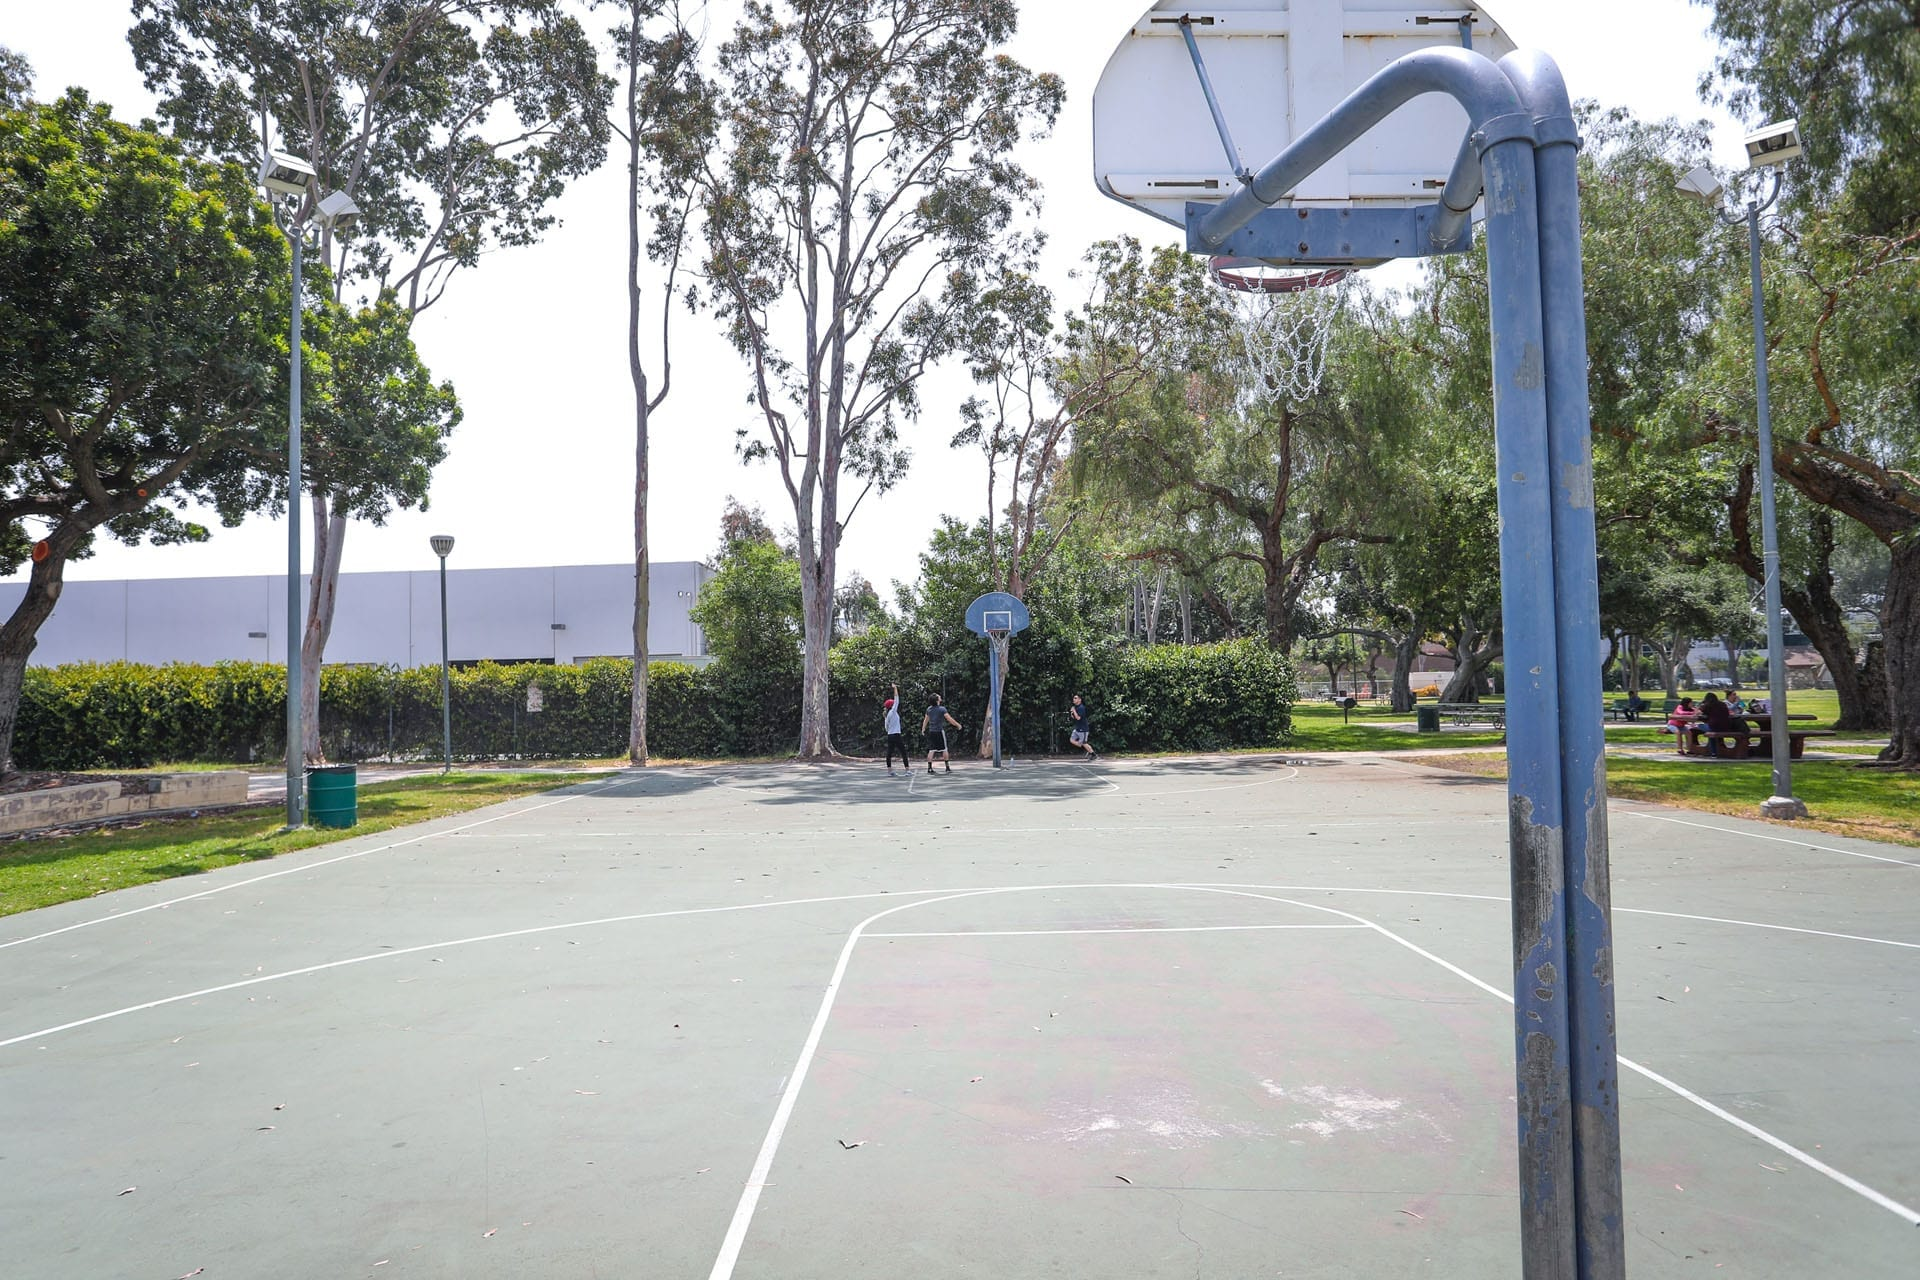 Basketball court, kids playing basketball